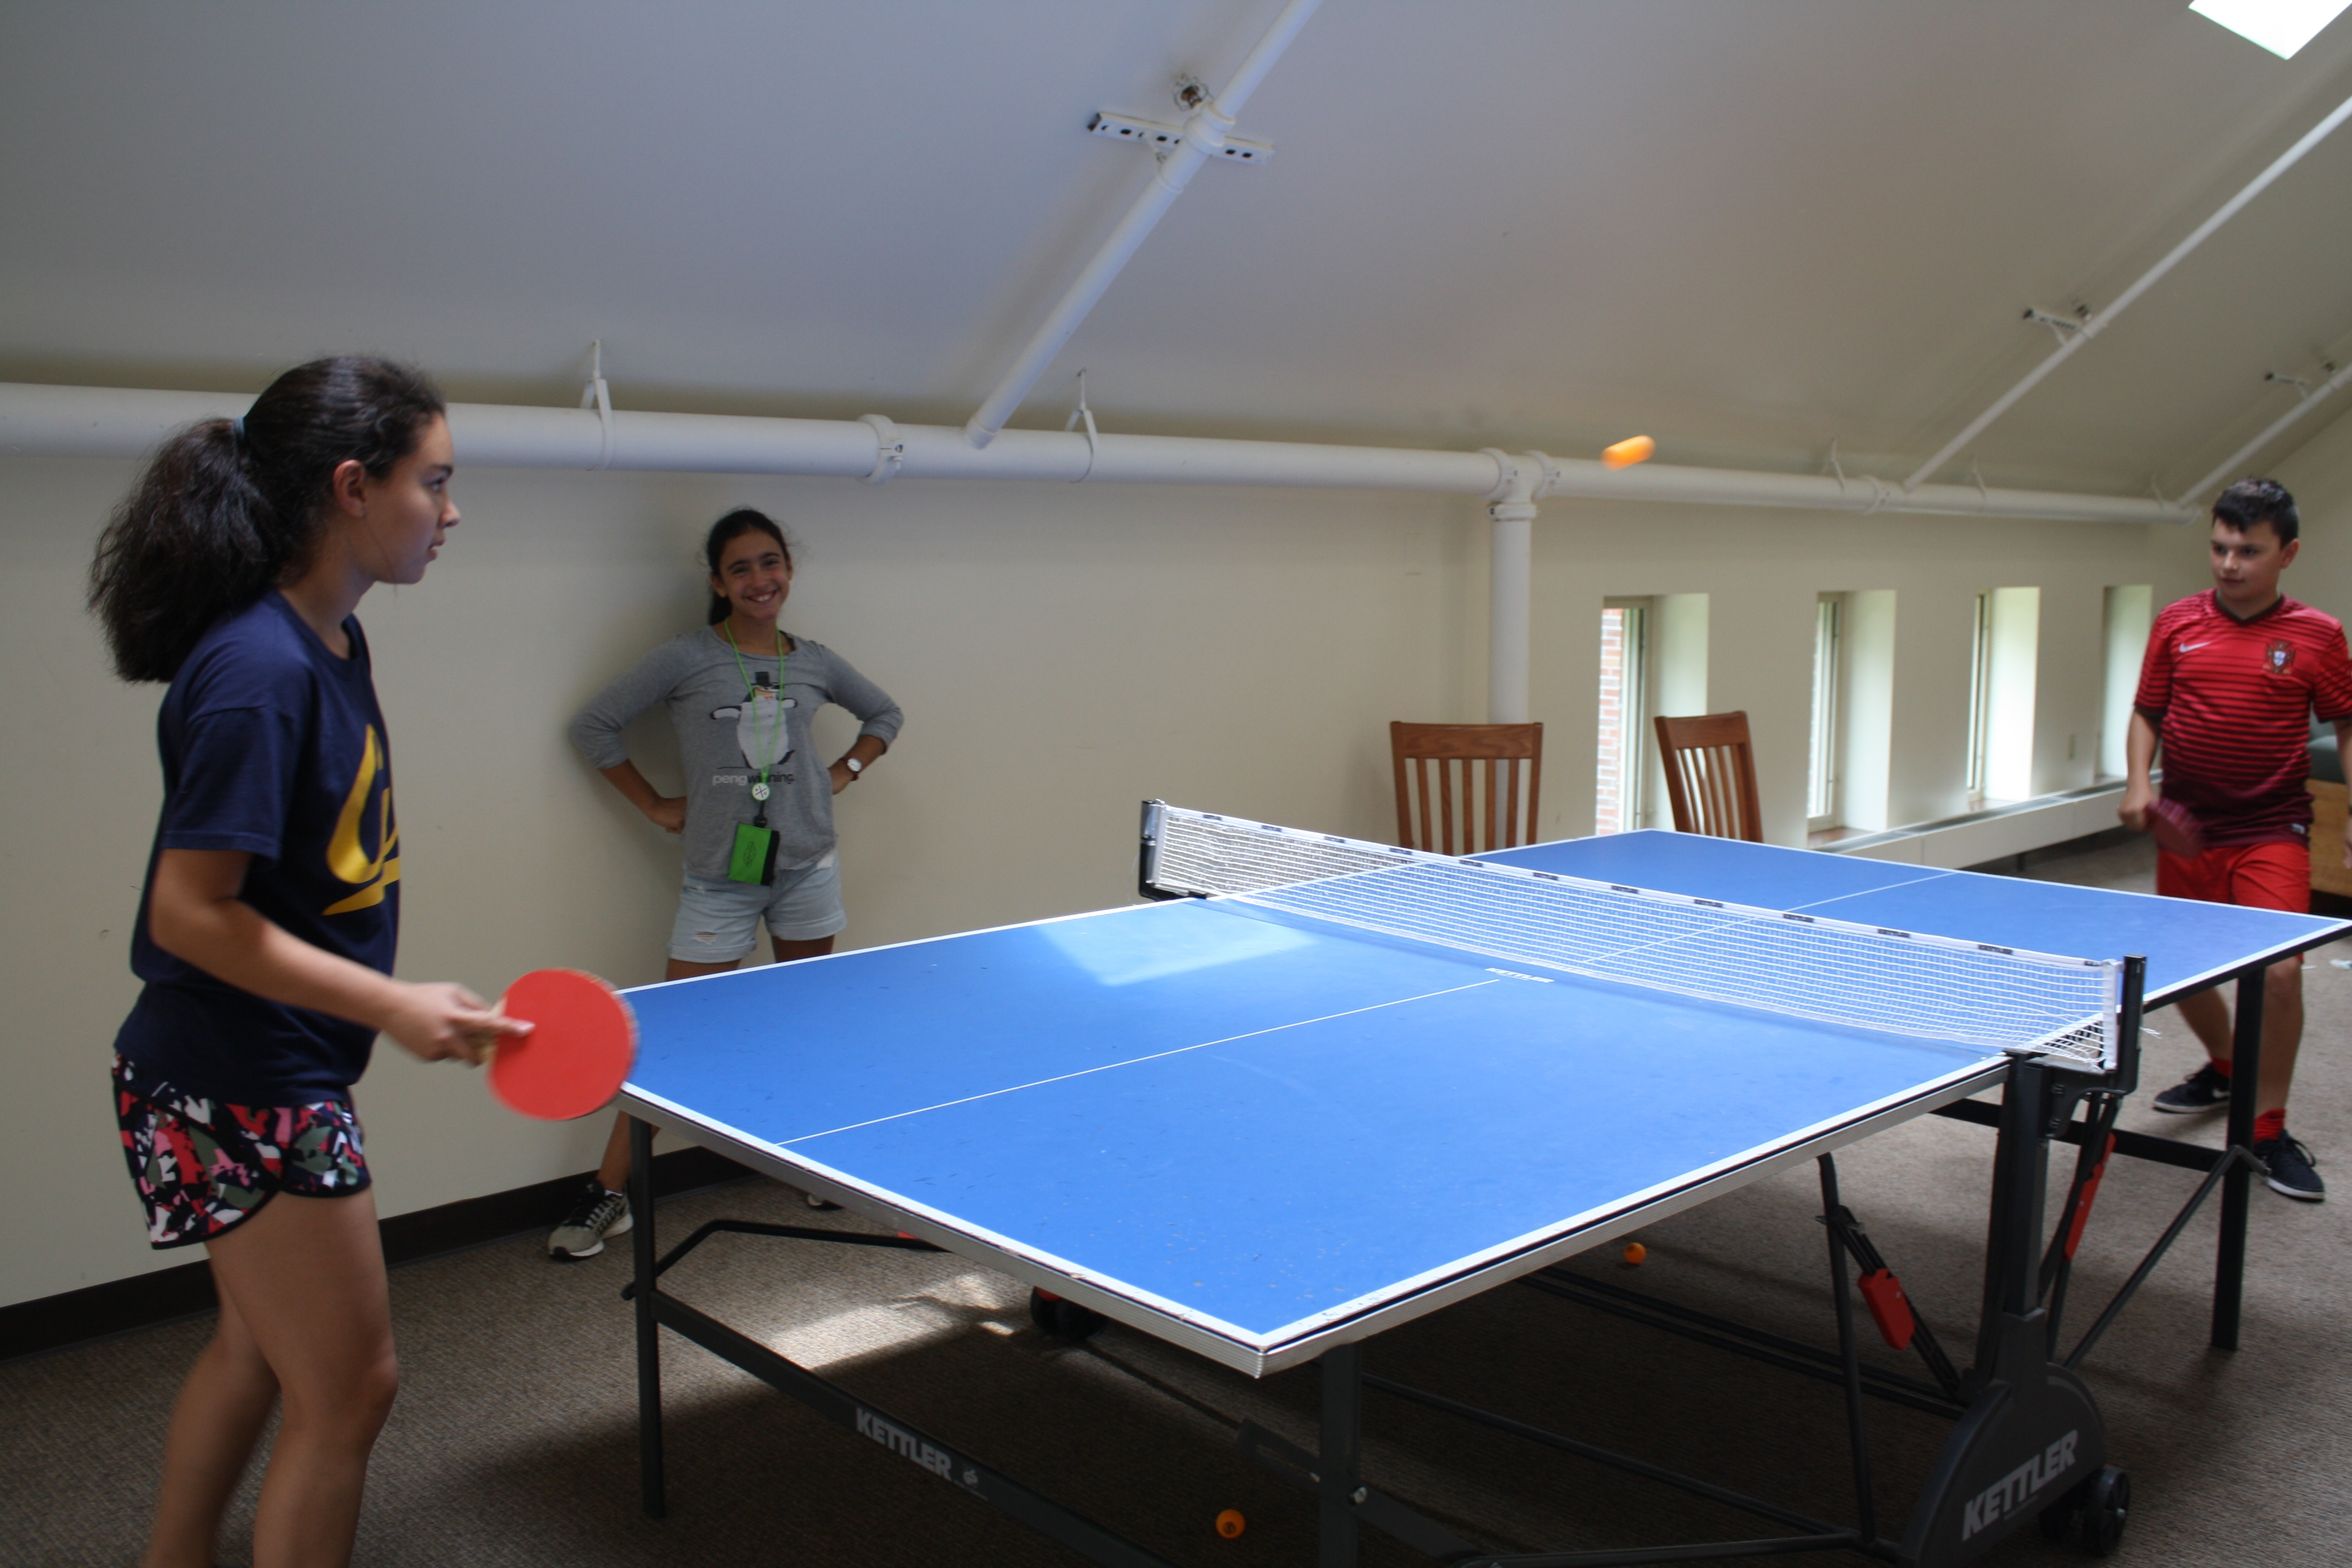 A heated pingpong match between two siblings, Ava and Abram.